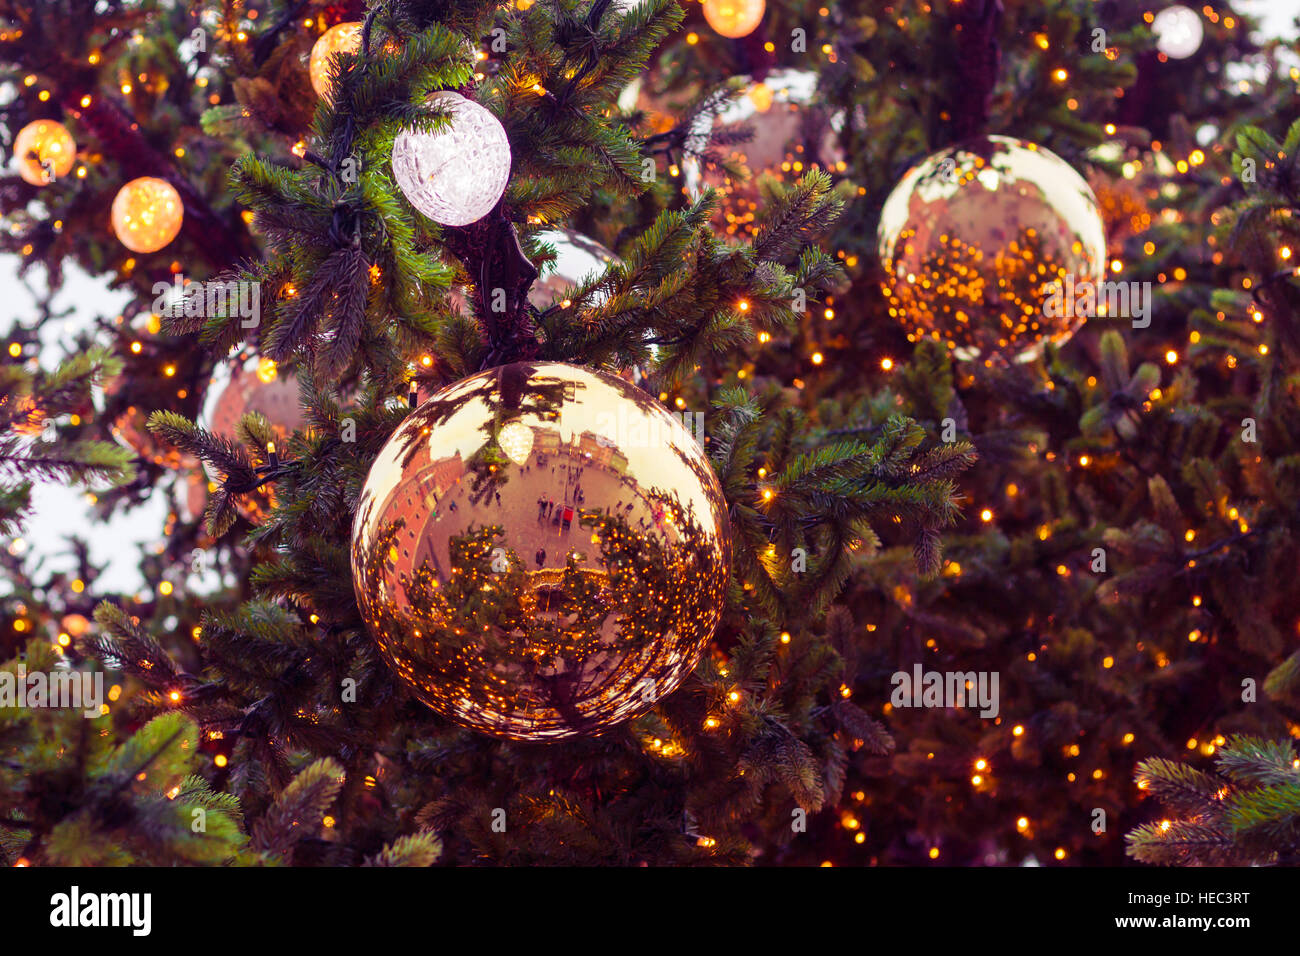 Christmas Baubles On Christmas Tree. Large Christmas Baubles On Artificial Christmas  Tree